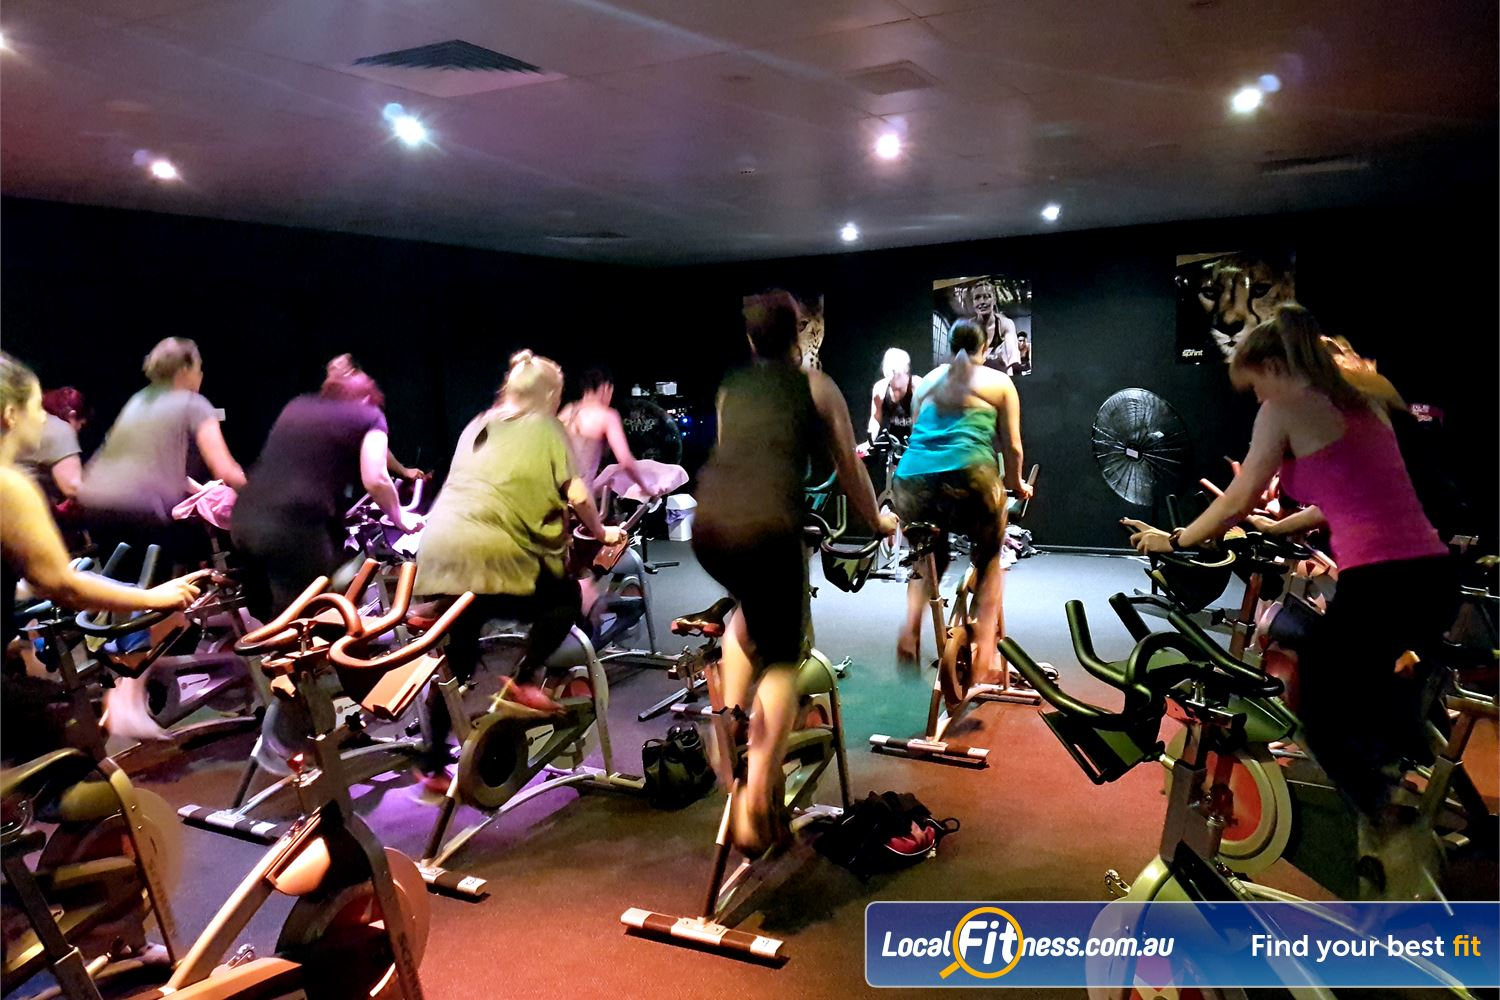 Fernwood Fitness Near Fairview Park Burn calories fast with St Agnes cycle classes.